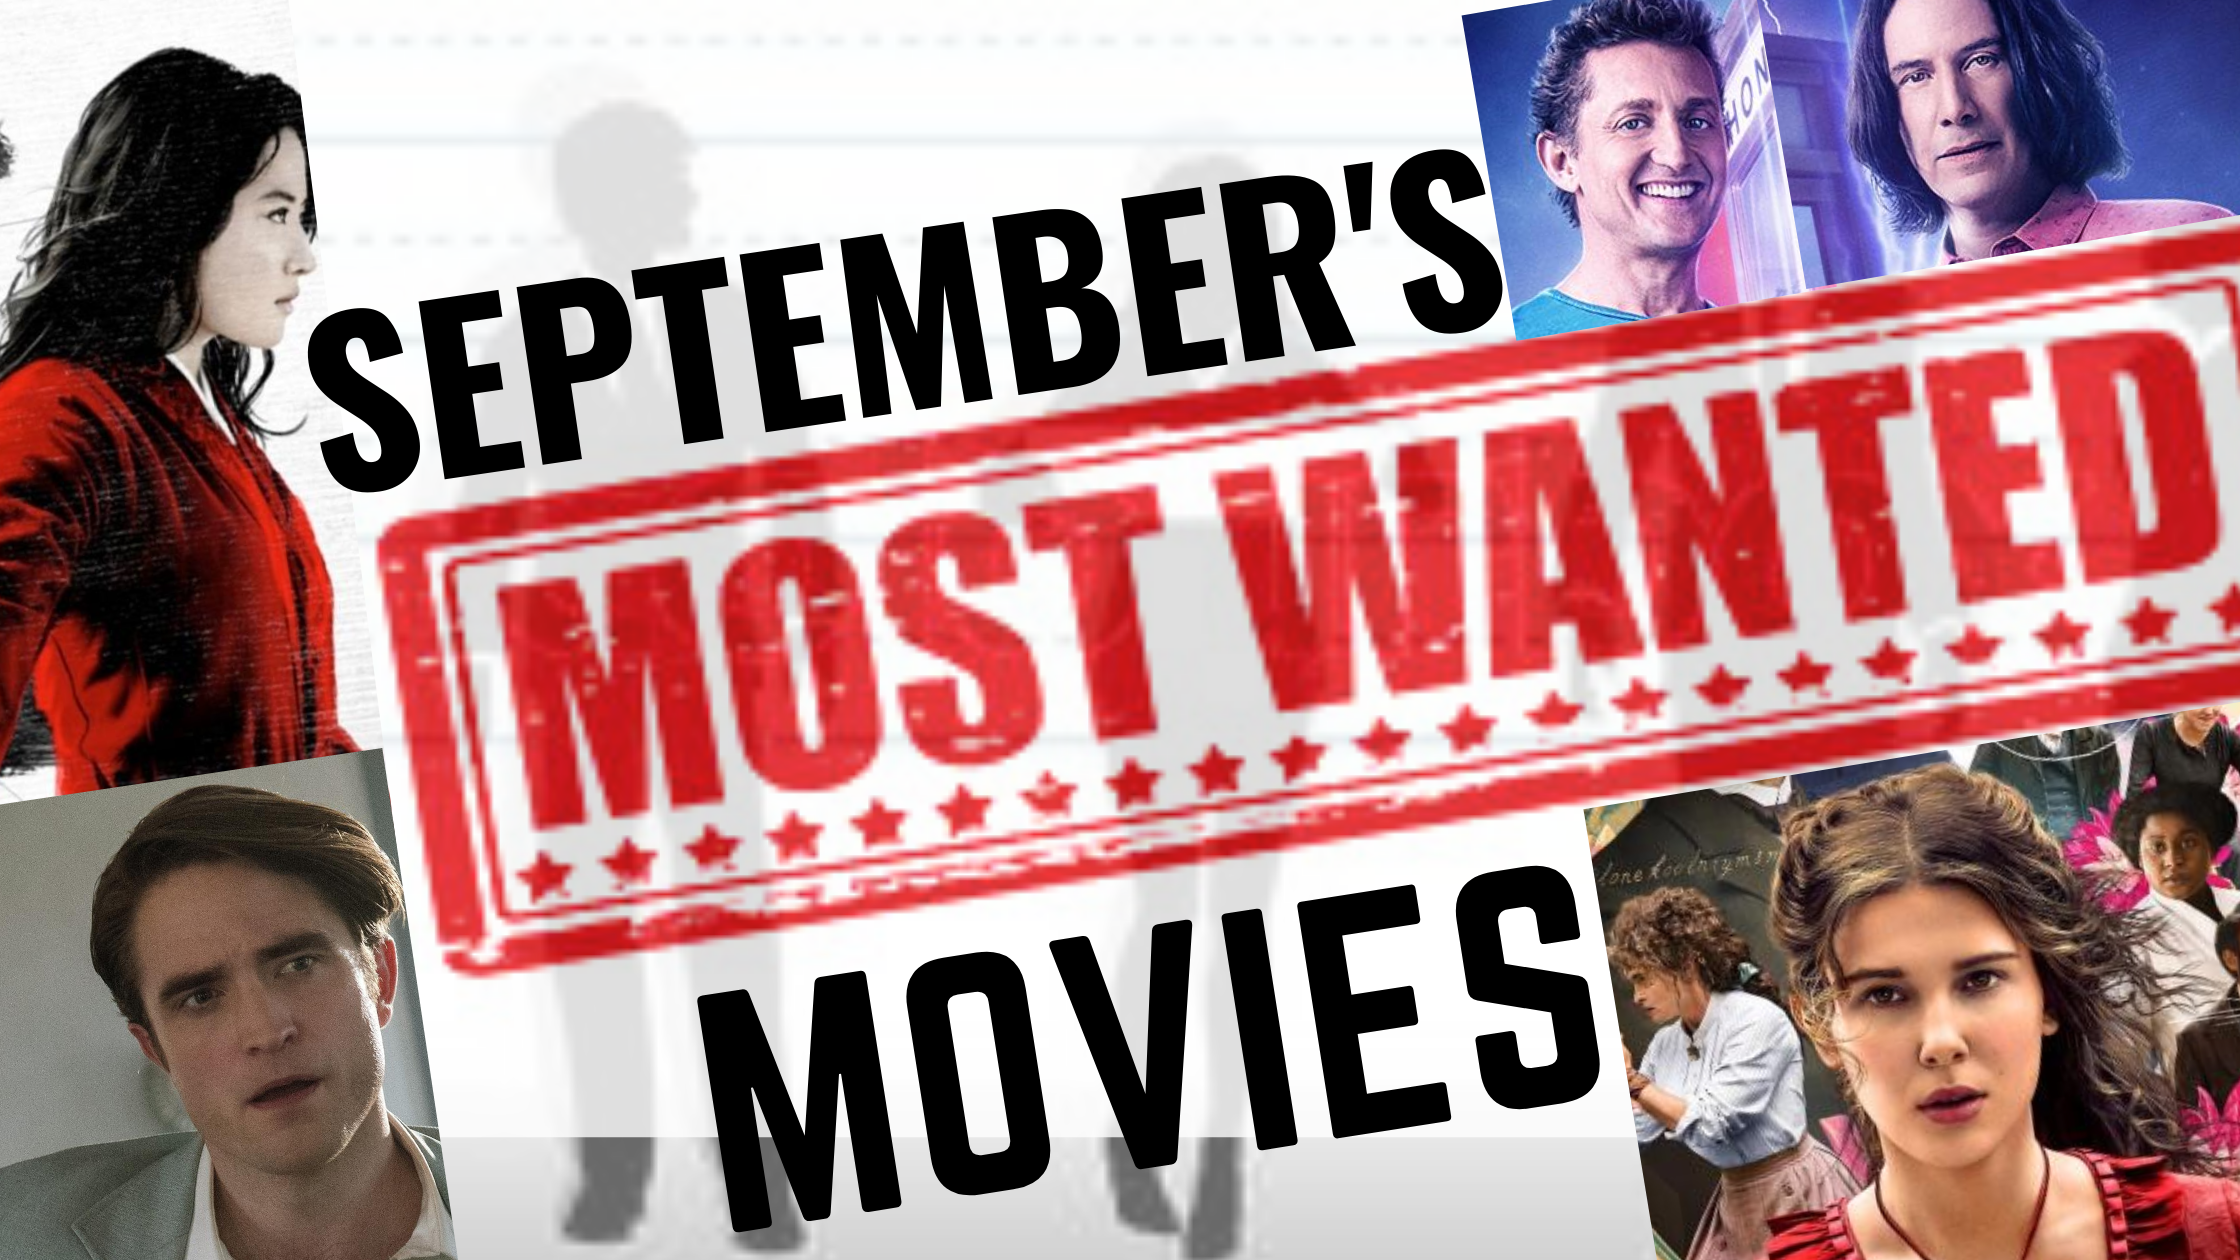 Septembers most wanted movies